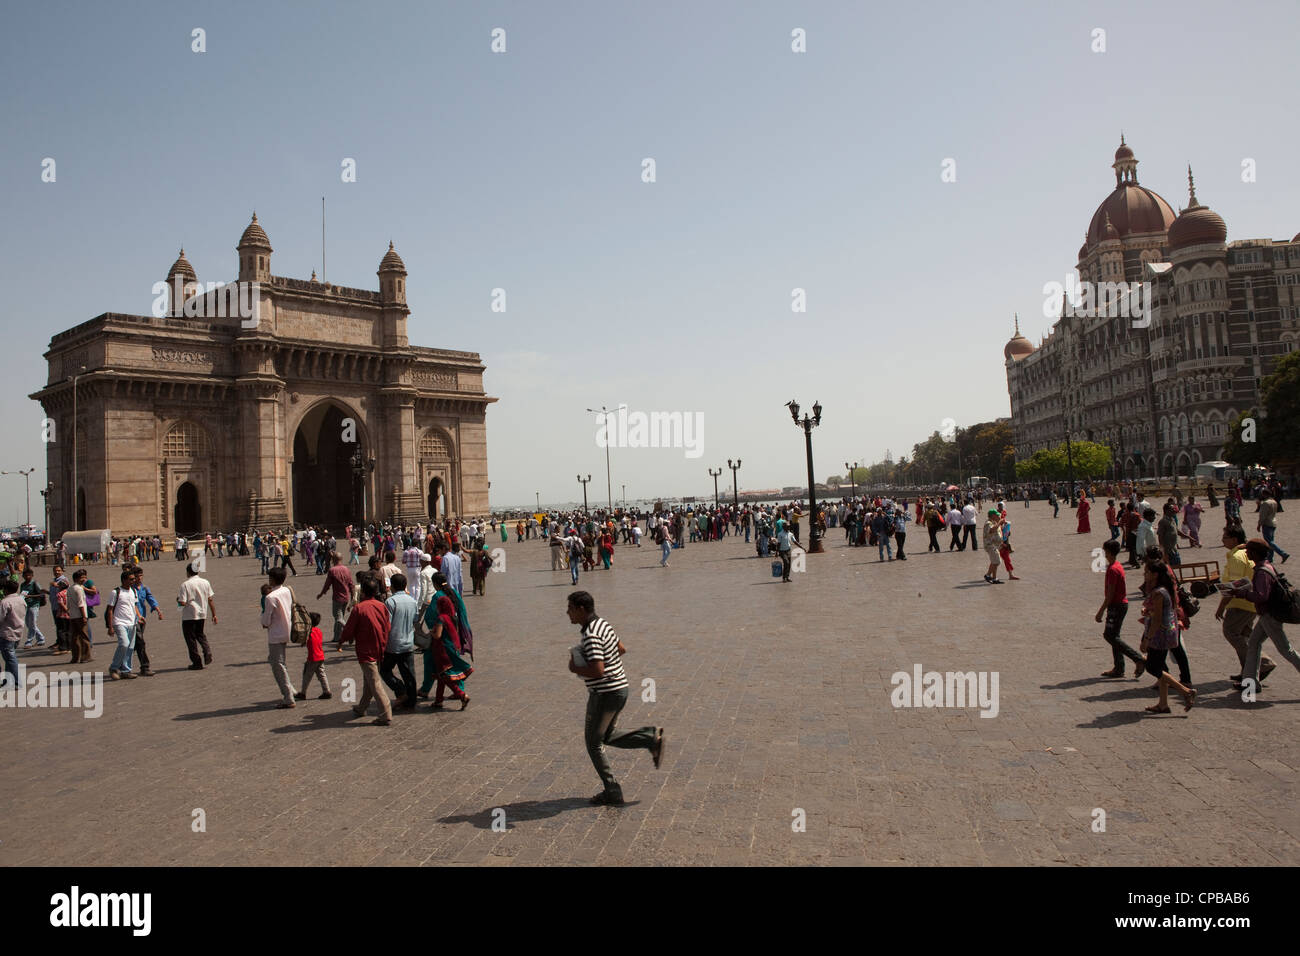 Gateway in India - Mumbai (Bombay) Immagini Stock